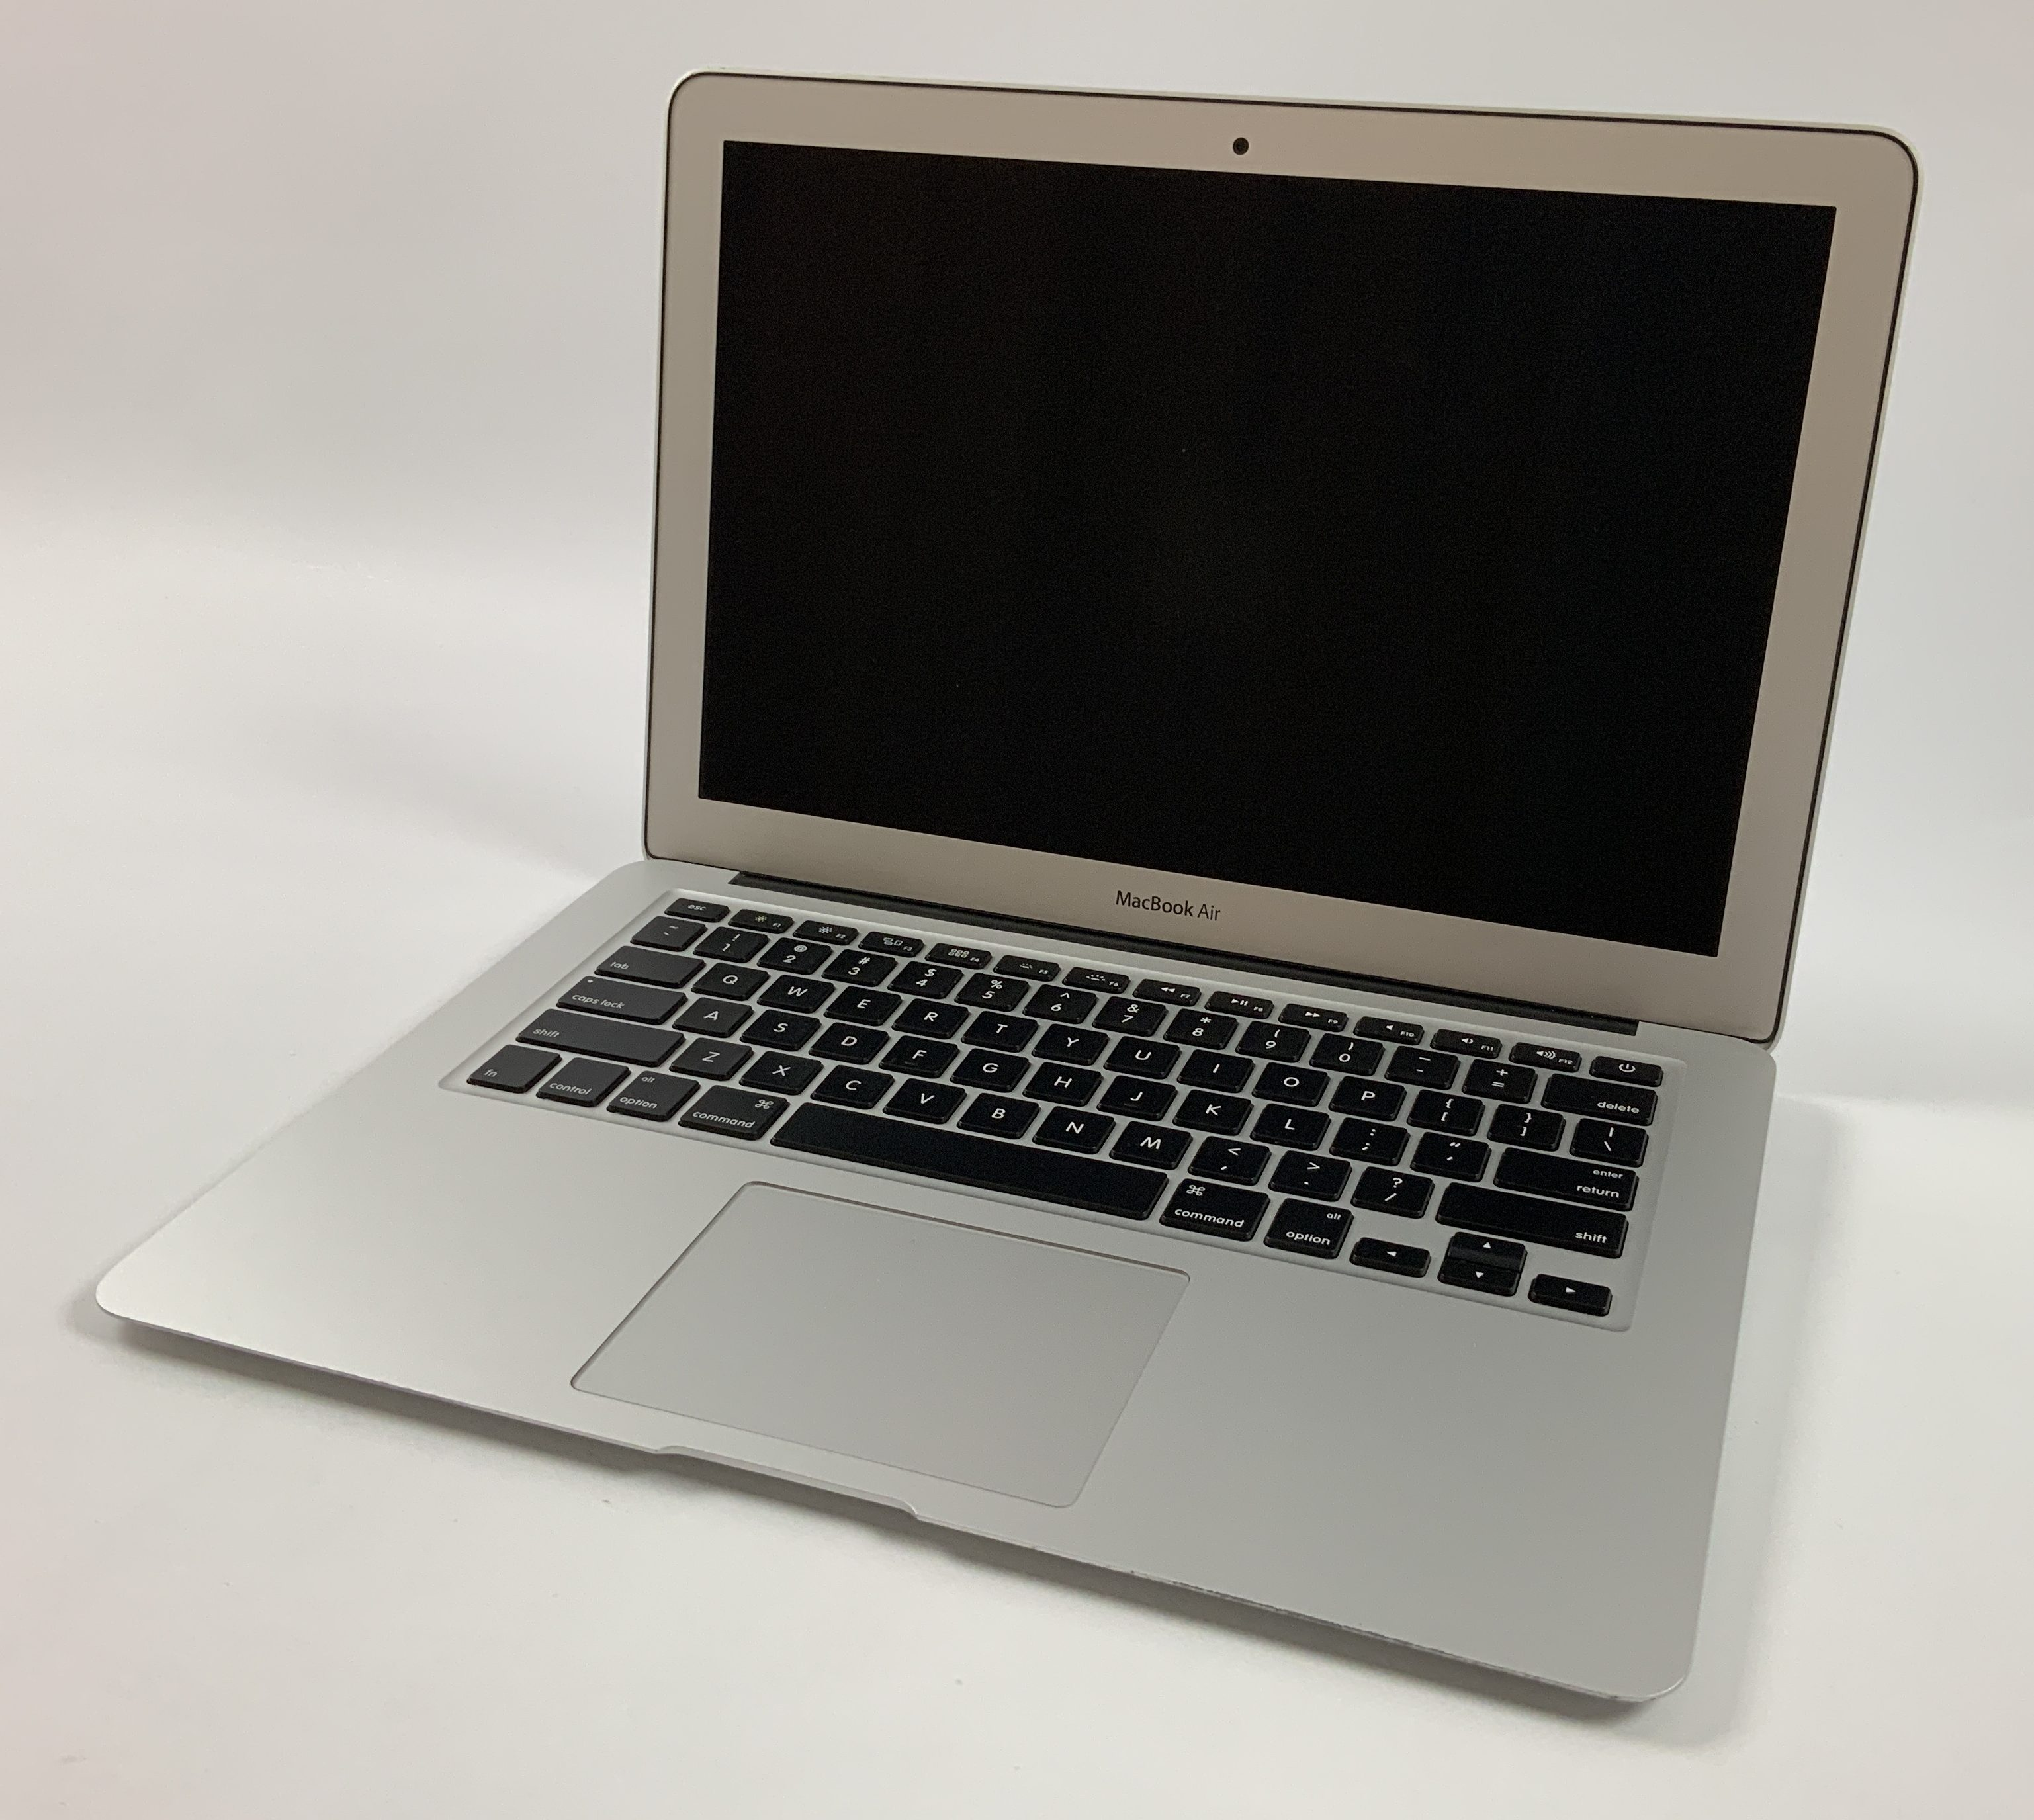 "MacBook Air 13"" Early 2014 (Intel Core i5 1.4 GHz 4 GB RAM 256 GB SSD), Intel Core i5 1.4 GHz, 4 GB RAM, 256 GB SSD, image 1"